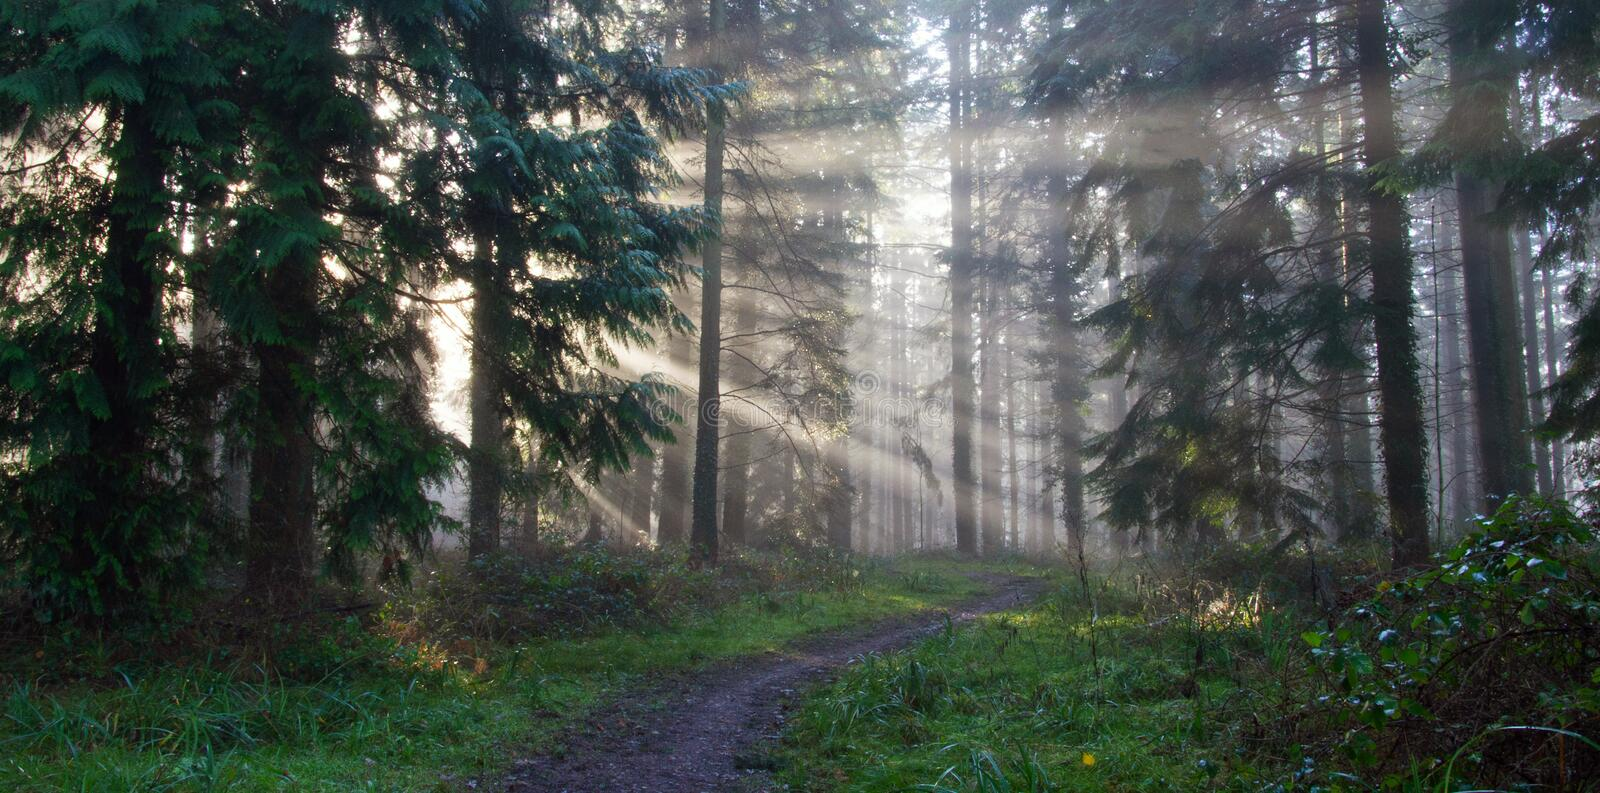 Sun beams coming through the pine trees, as a path goes through a misty forest on an autumn morning.  royalty free stock image